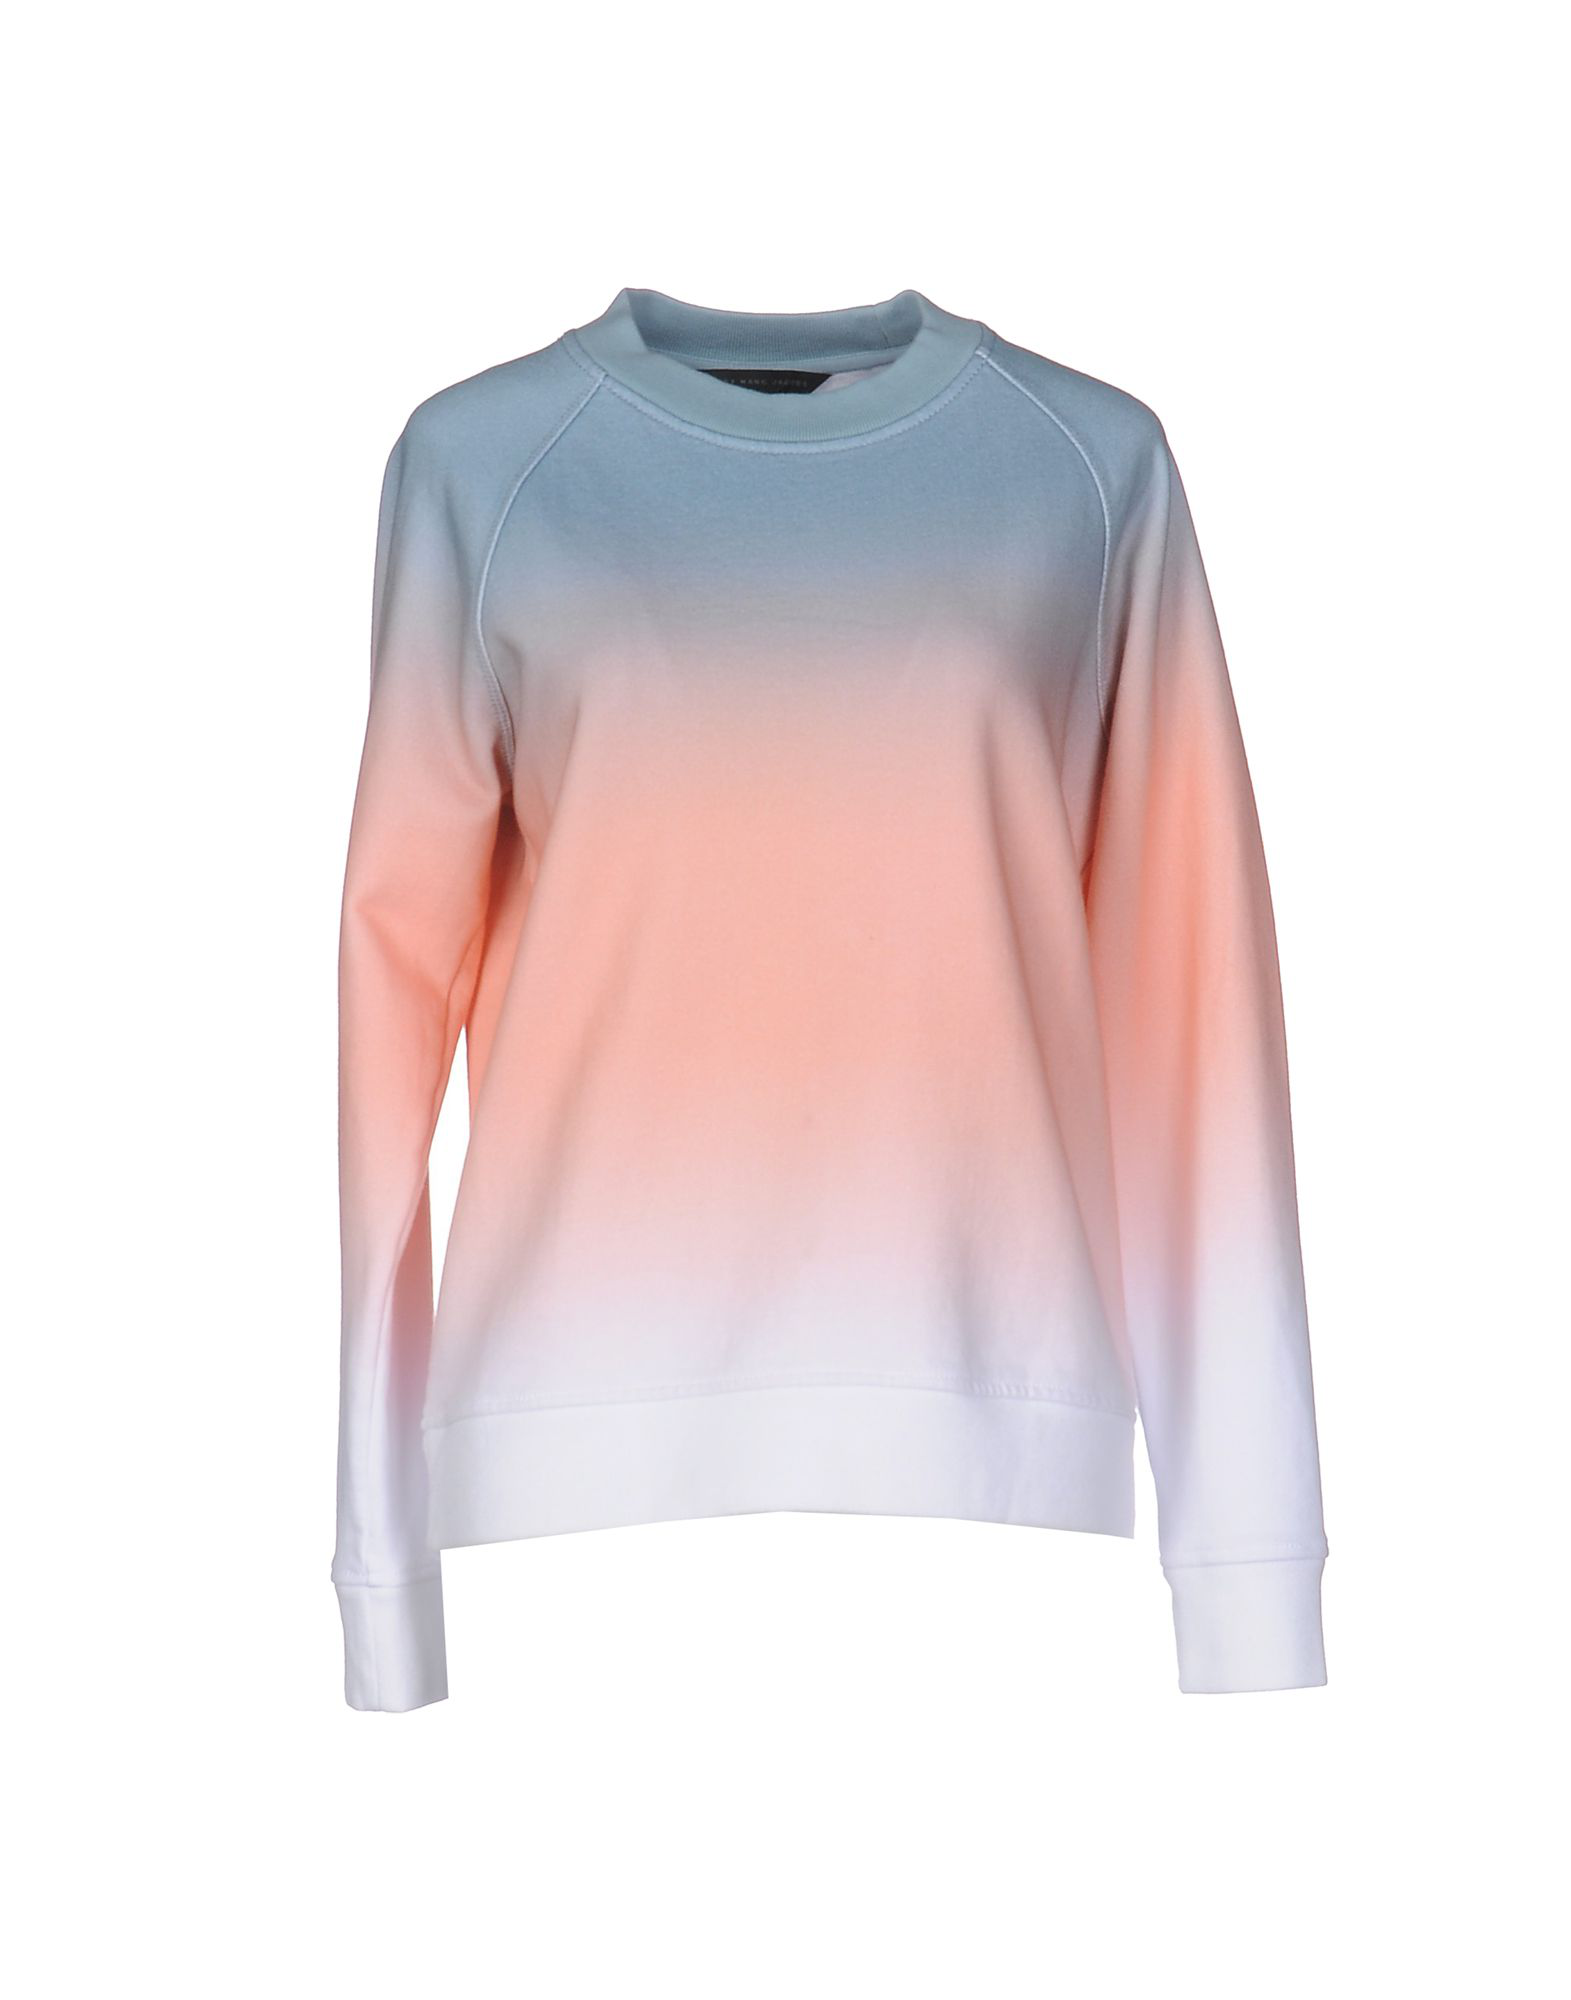 Marc By Marc Jacobs Sweatshirt In Salmon Pink